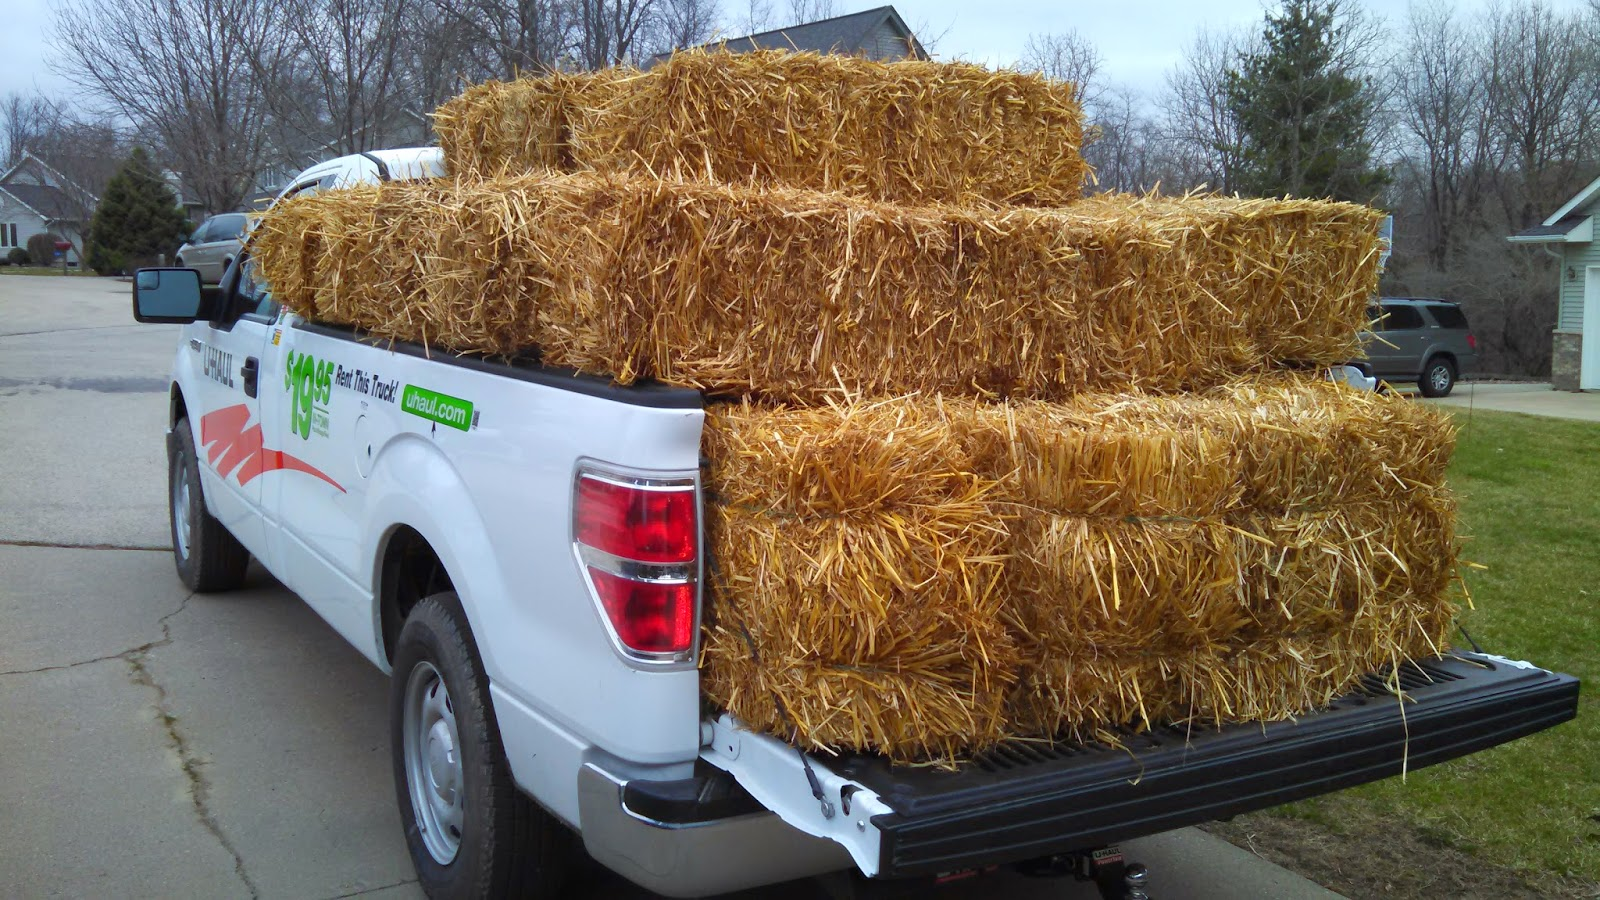 I bought a pickup truck load of 25 straw bales for my straw bale garden